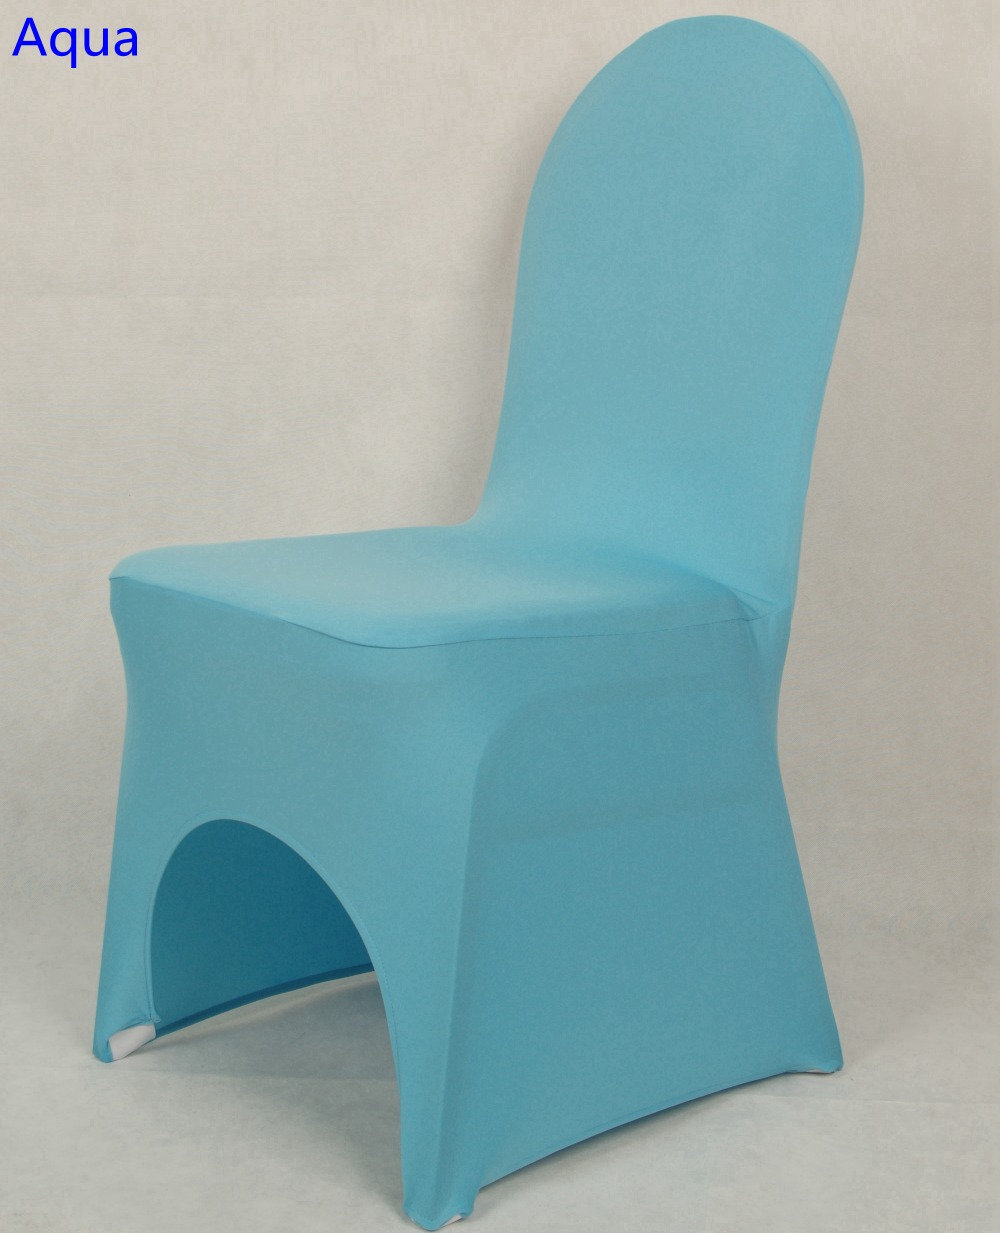 Cover Chairs Wholesale Walmart Chair Covers For Recliners Aqua Colour Lycra Wedding Universal Banquet Decoration On Sale Dinner Party In From Home Garden